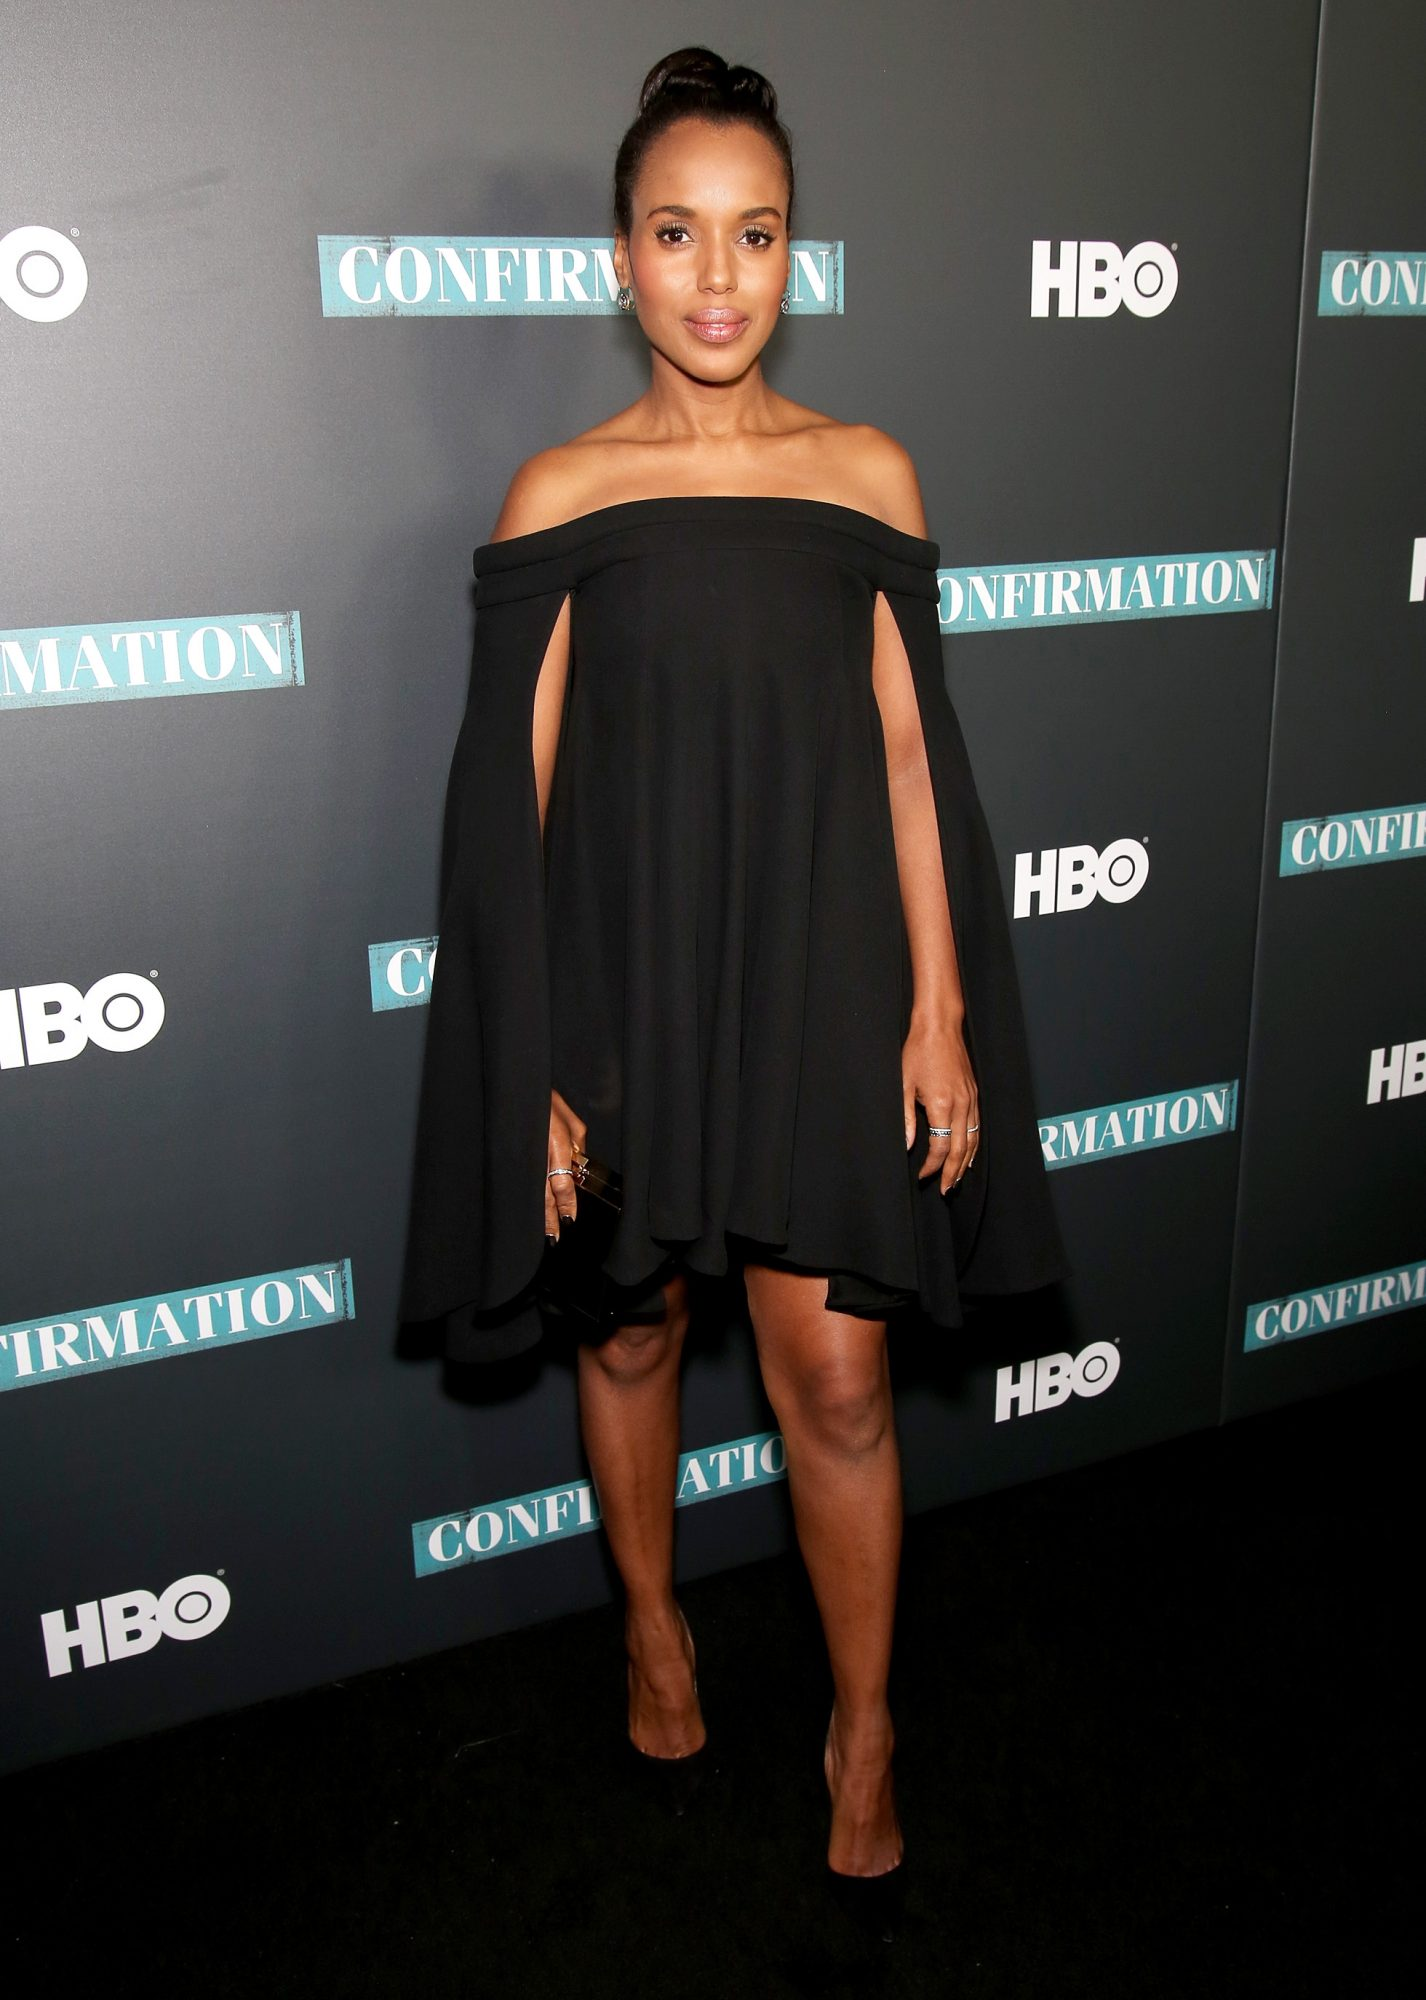 Kerry Washington Listens to Beyoncé and Rihanna to Feel Powerful